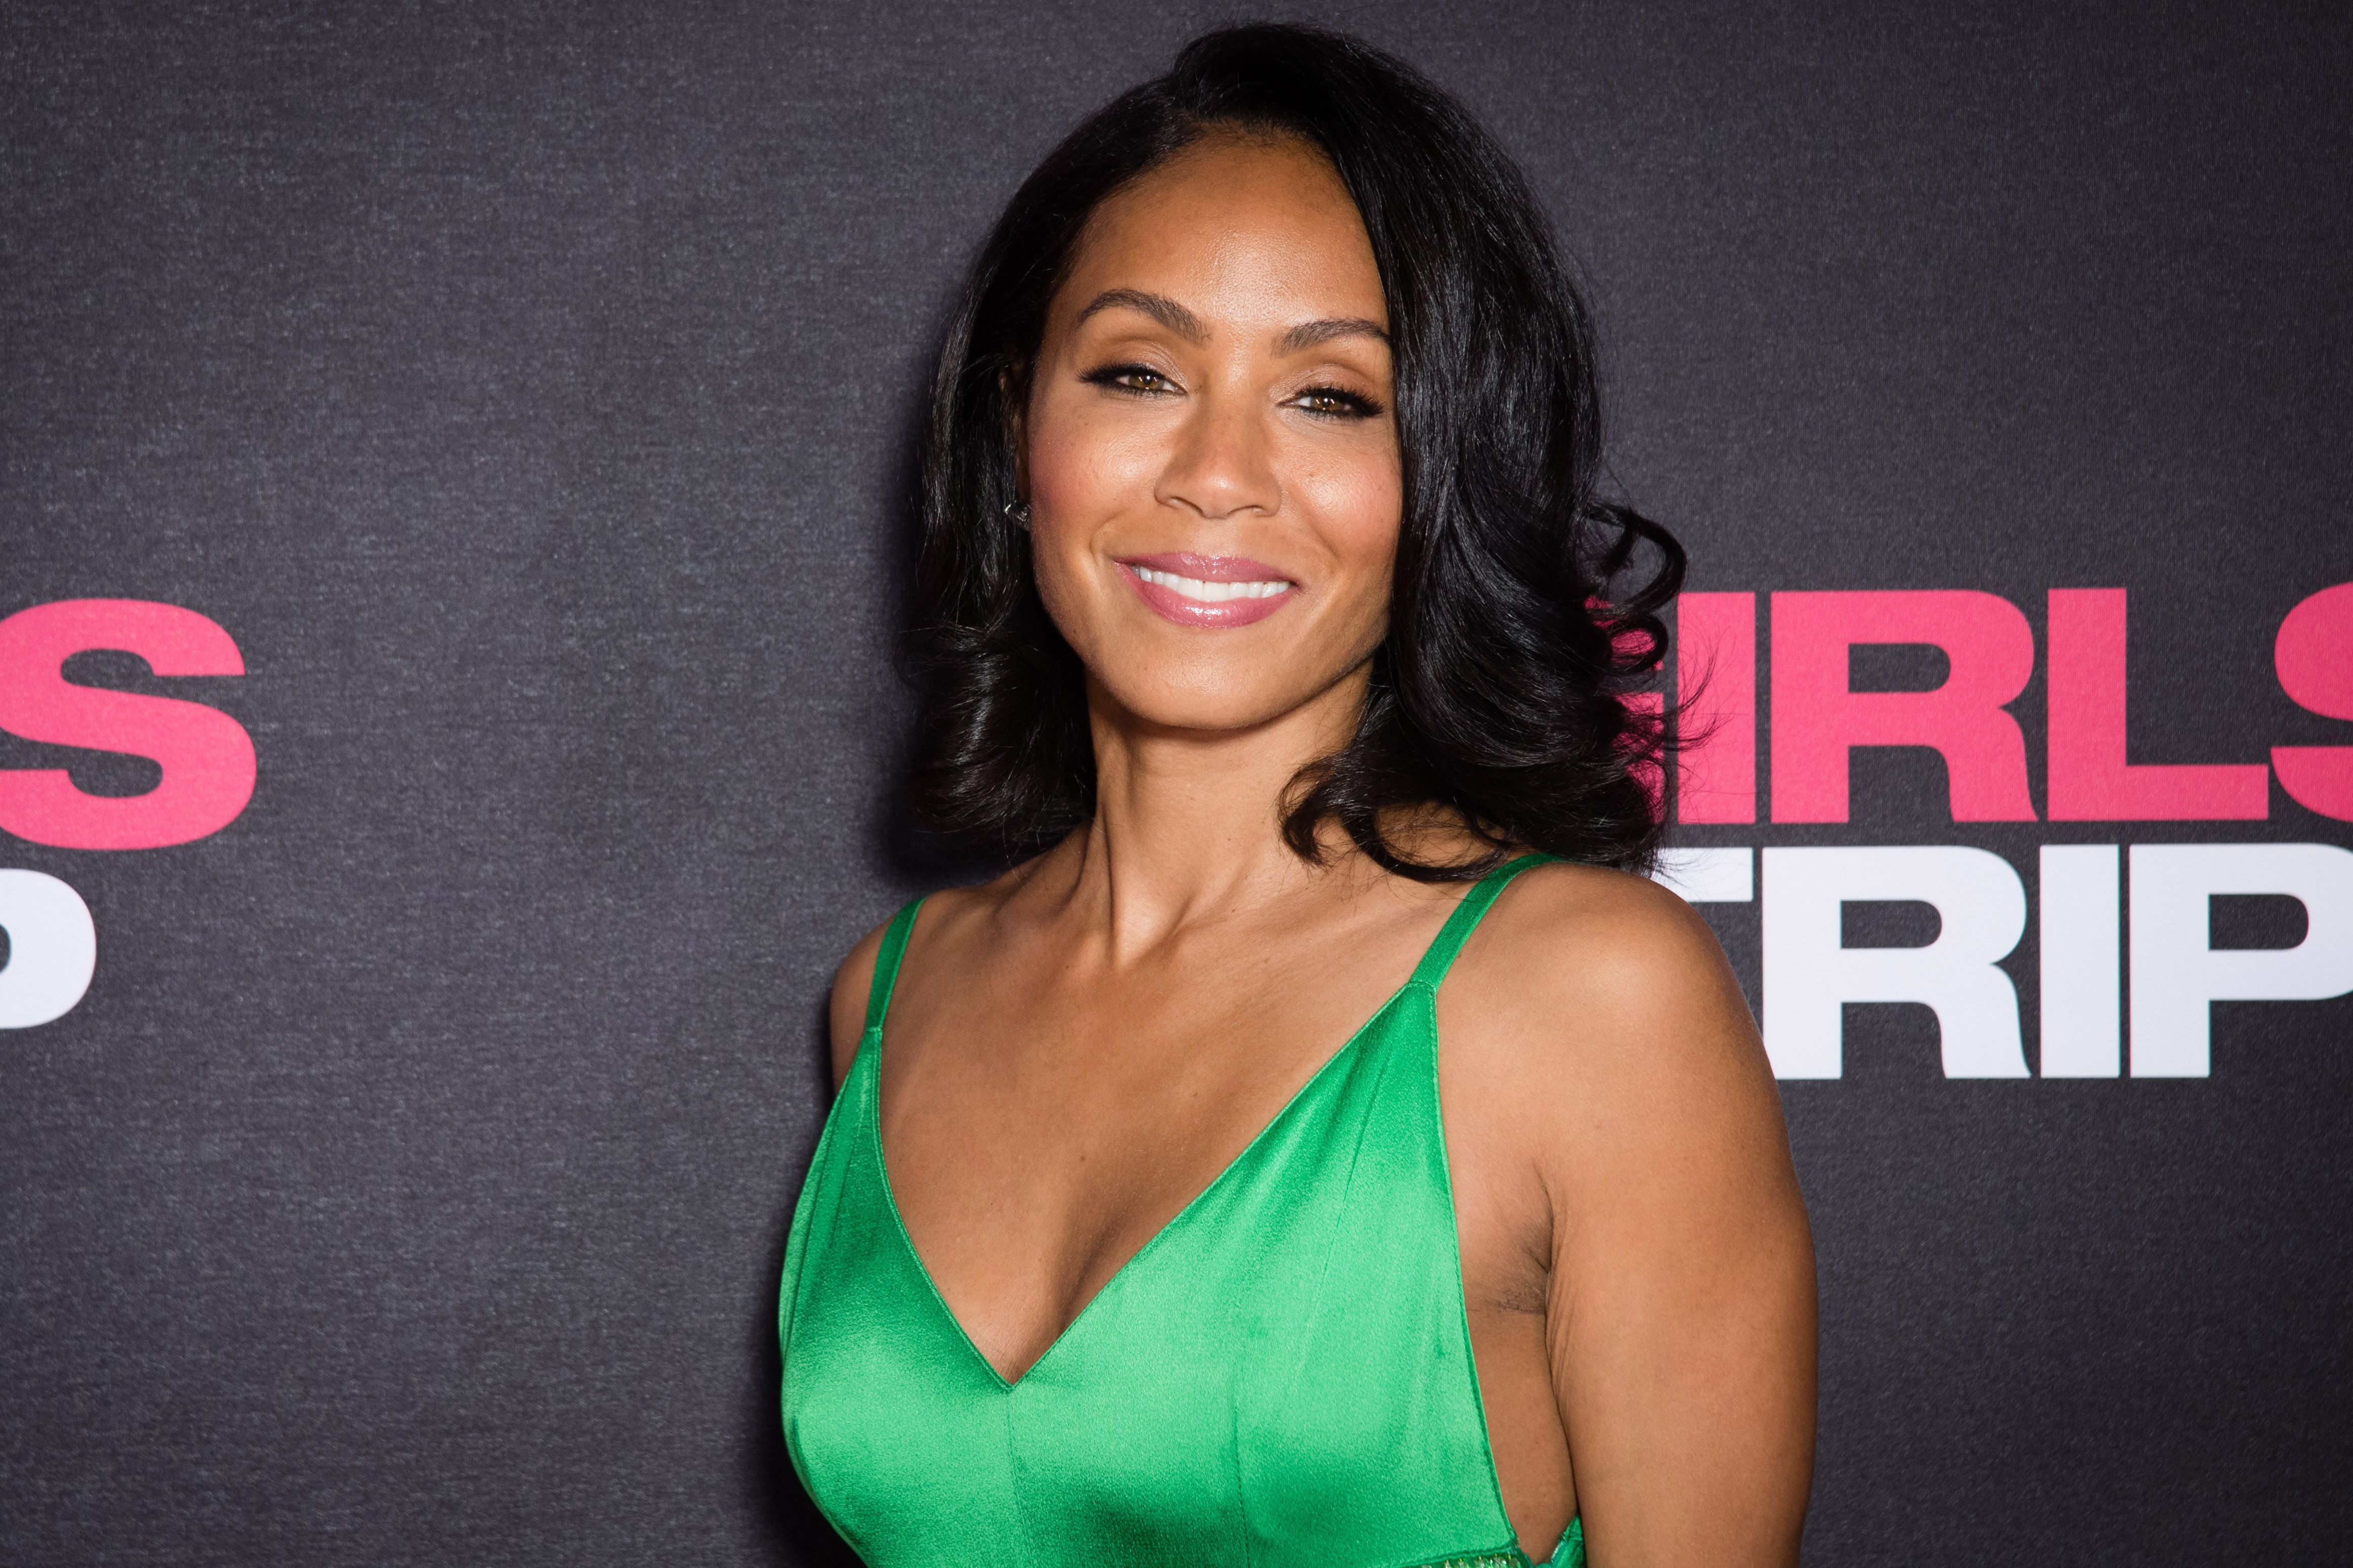 cameltoe Pictures Jada Pinkett Smith naked photo 2017